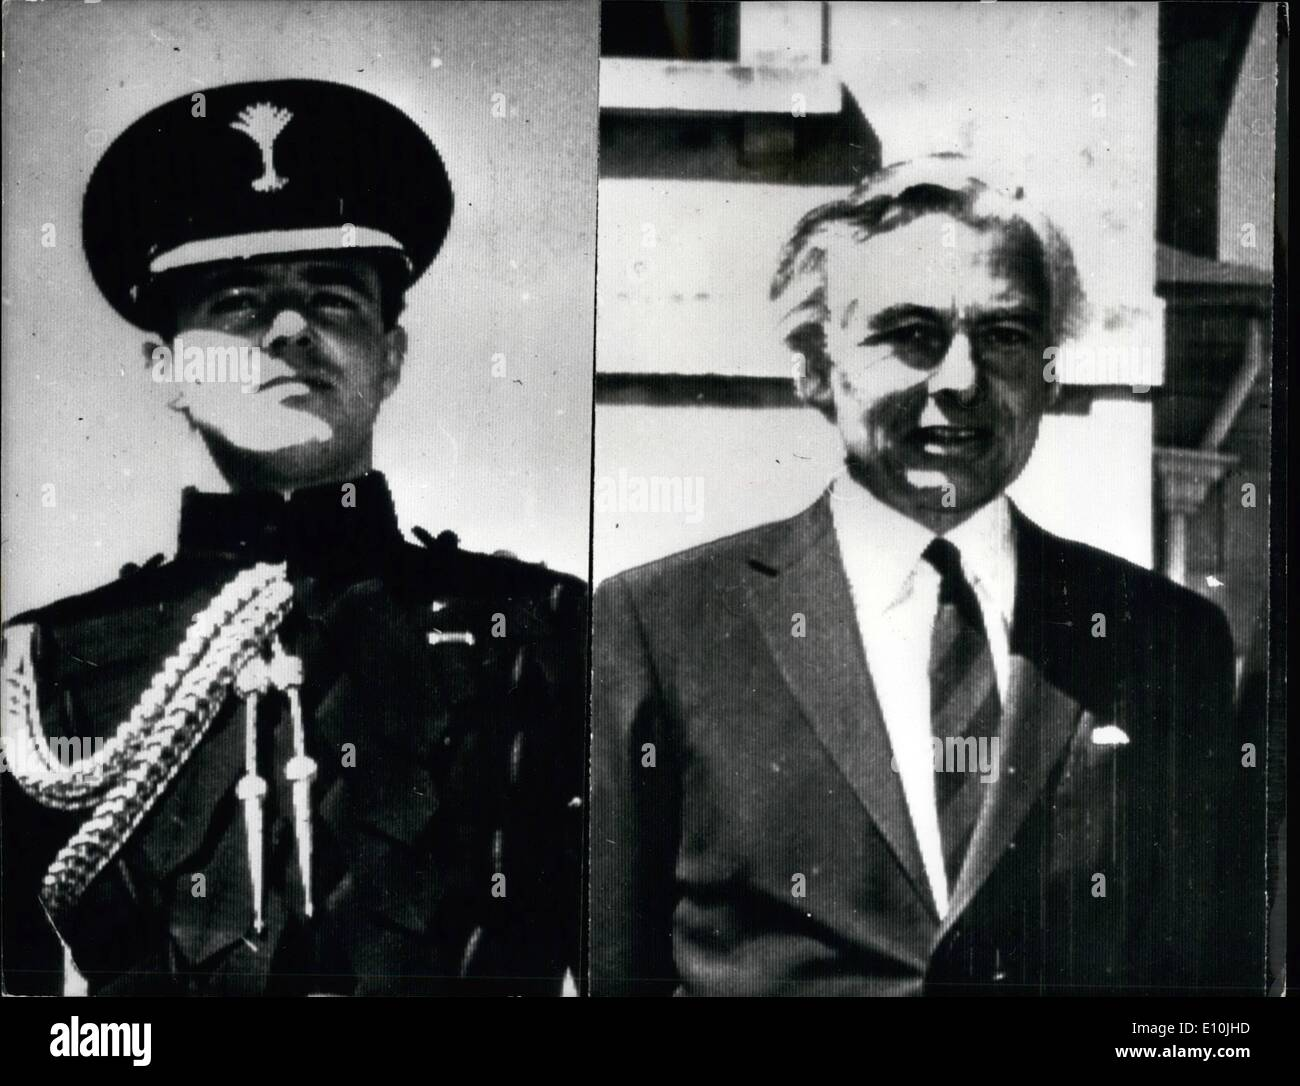 Mar. 03, 1973 - Bermuda Governor Shot: A state of Emergency was declared in Bermuda after the killing of the Governor, Sir Richard Sharples and his aide-De-camp, captain Hugh Sayers - both of whom were shot dead on Saturday as they strolled in the grounds of Government House. Photo Shows Captain Hugh Sayers (left) and Sir Richard Sharples (right), pictured at Government House on the occasion of receiving the commanding officer of the Norwegian destroyer H.N.M.S. Haakon VII which docked at Hamilton, Bermuda, on Friday. - Stock Image